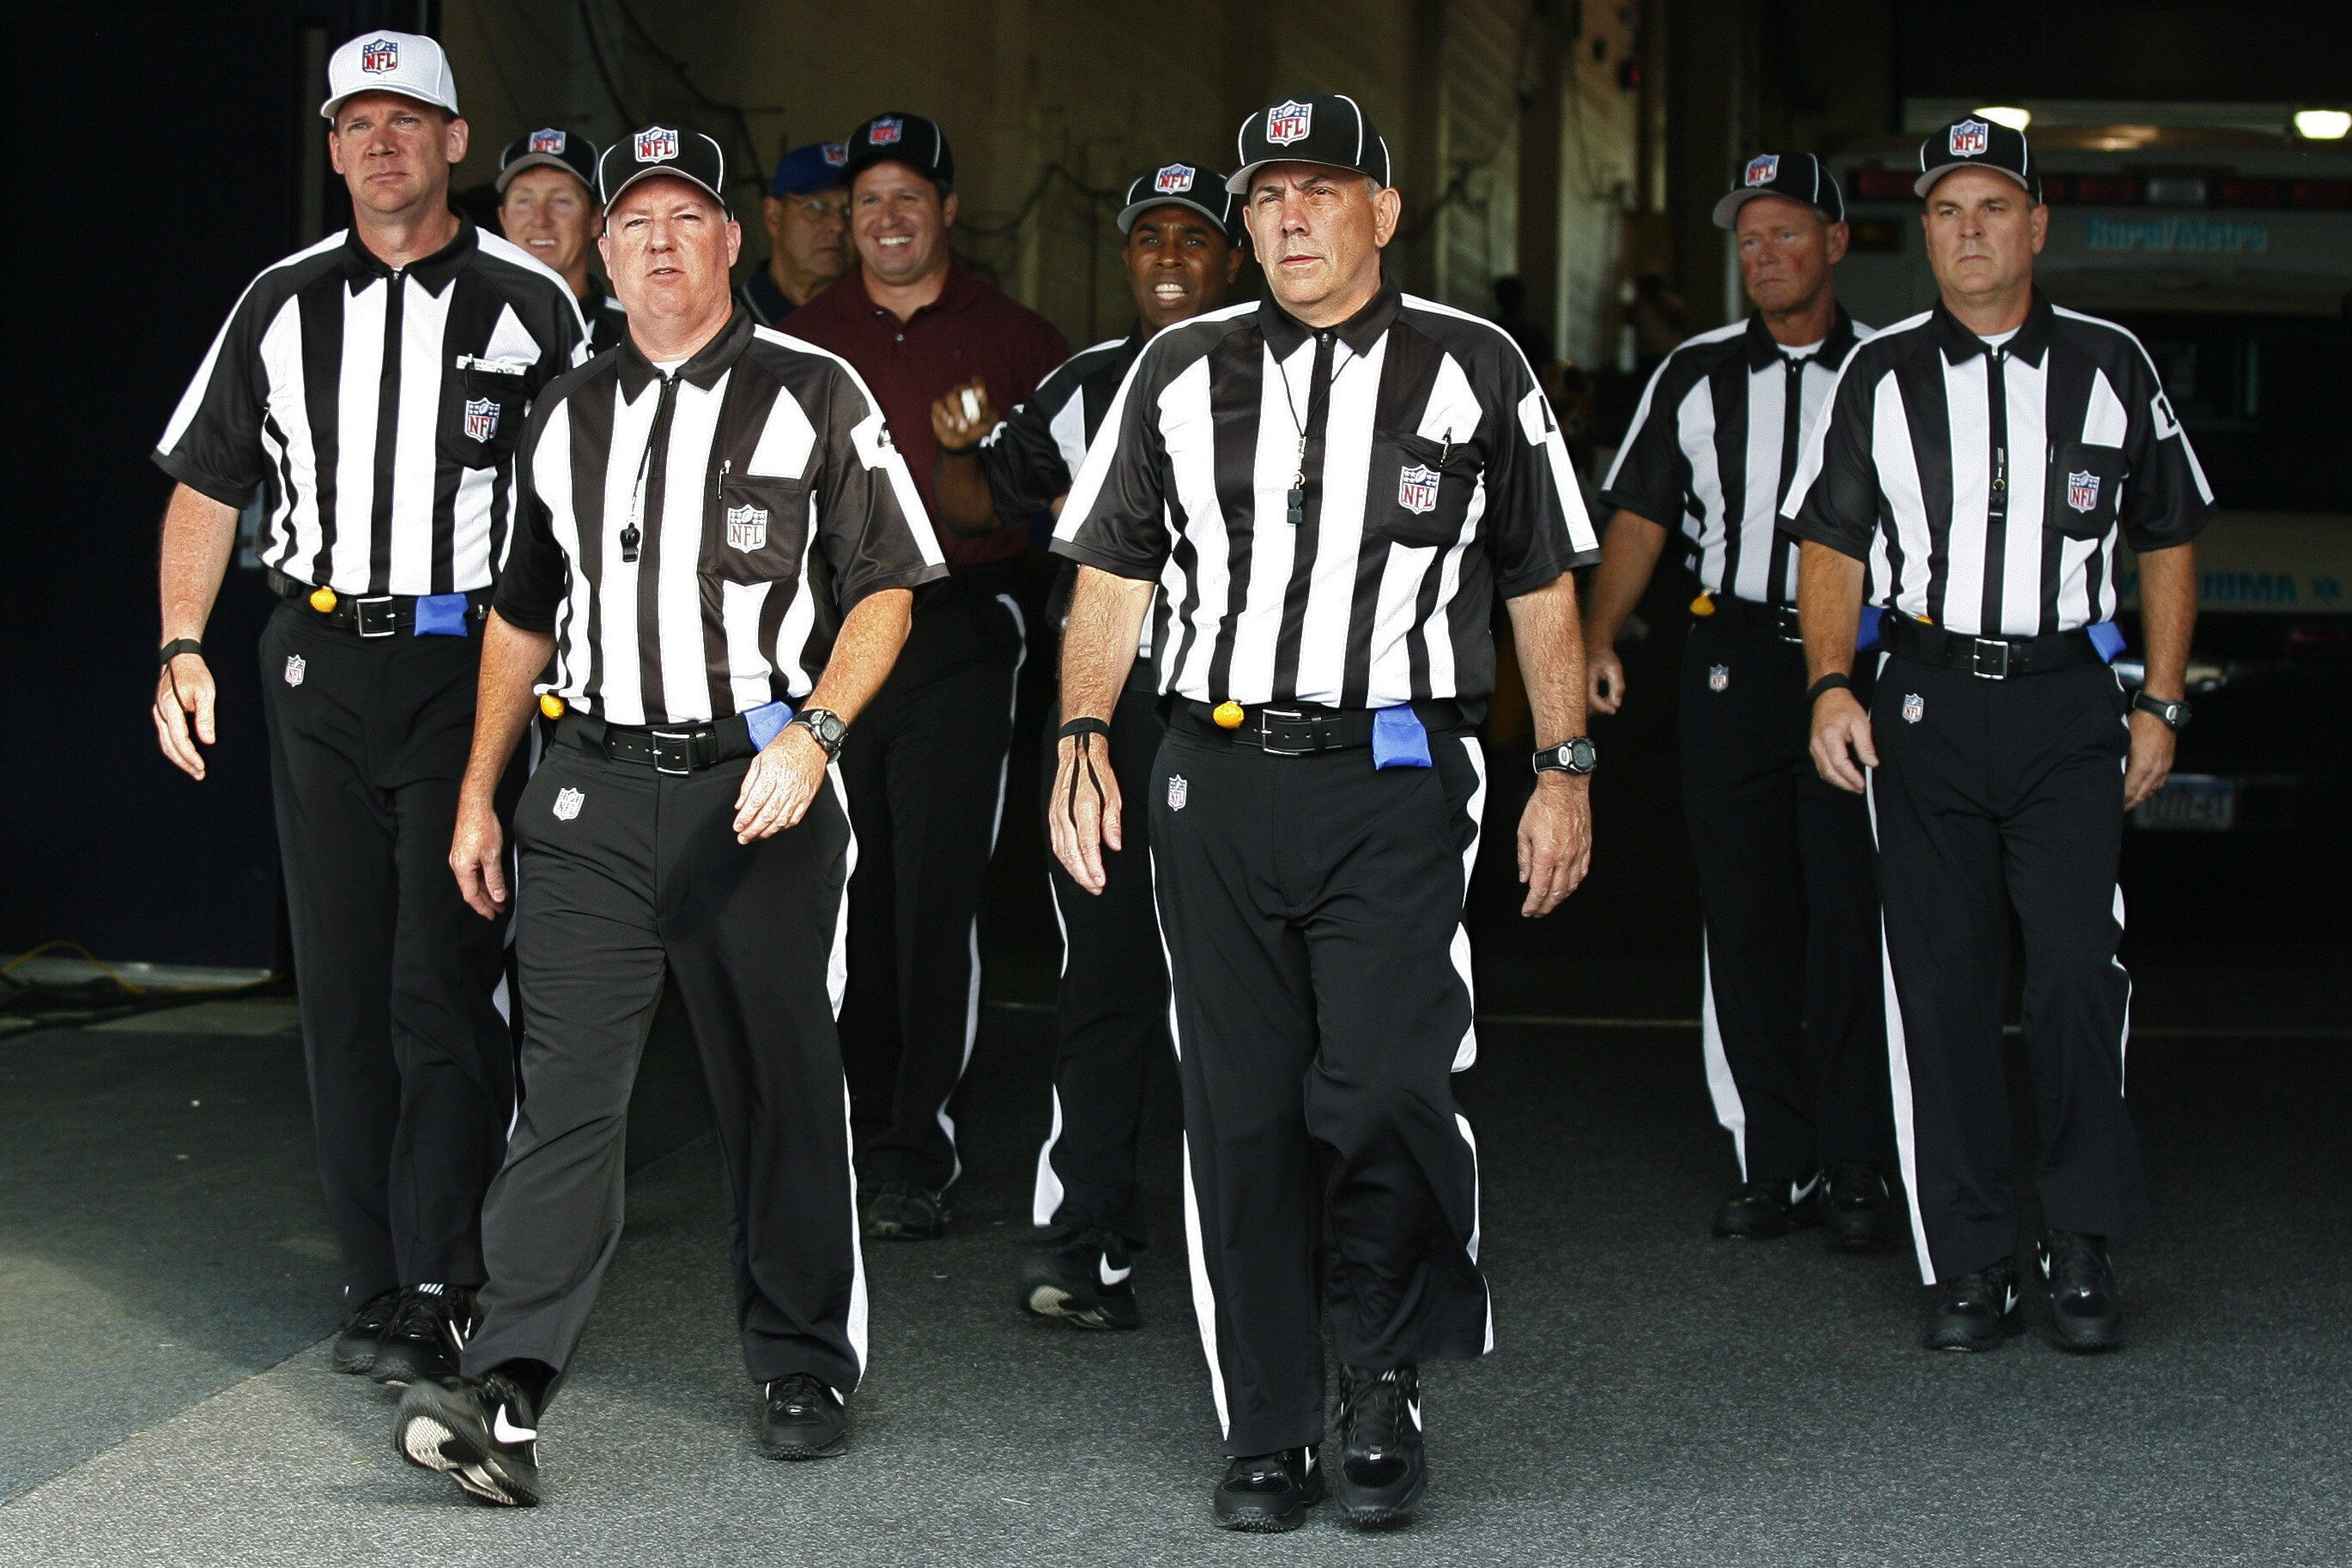 Nfl Referees Reach Labor Agreement To End Four Month Lockout